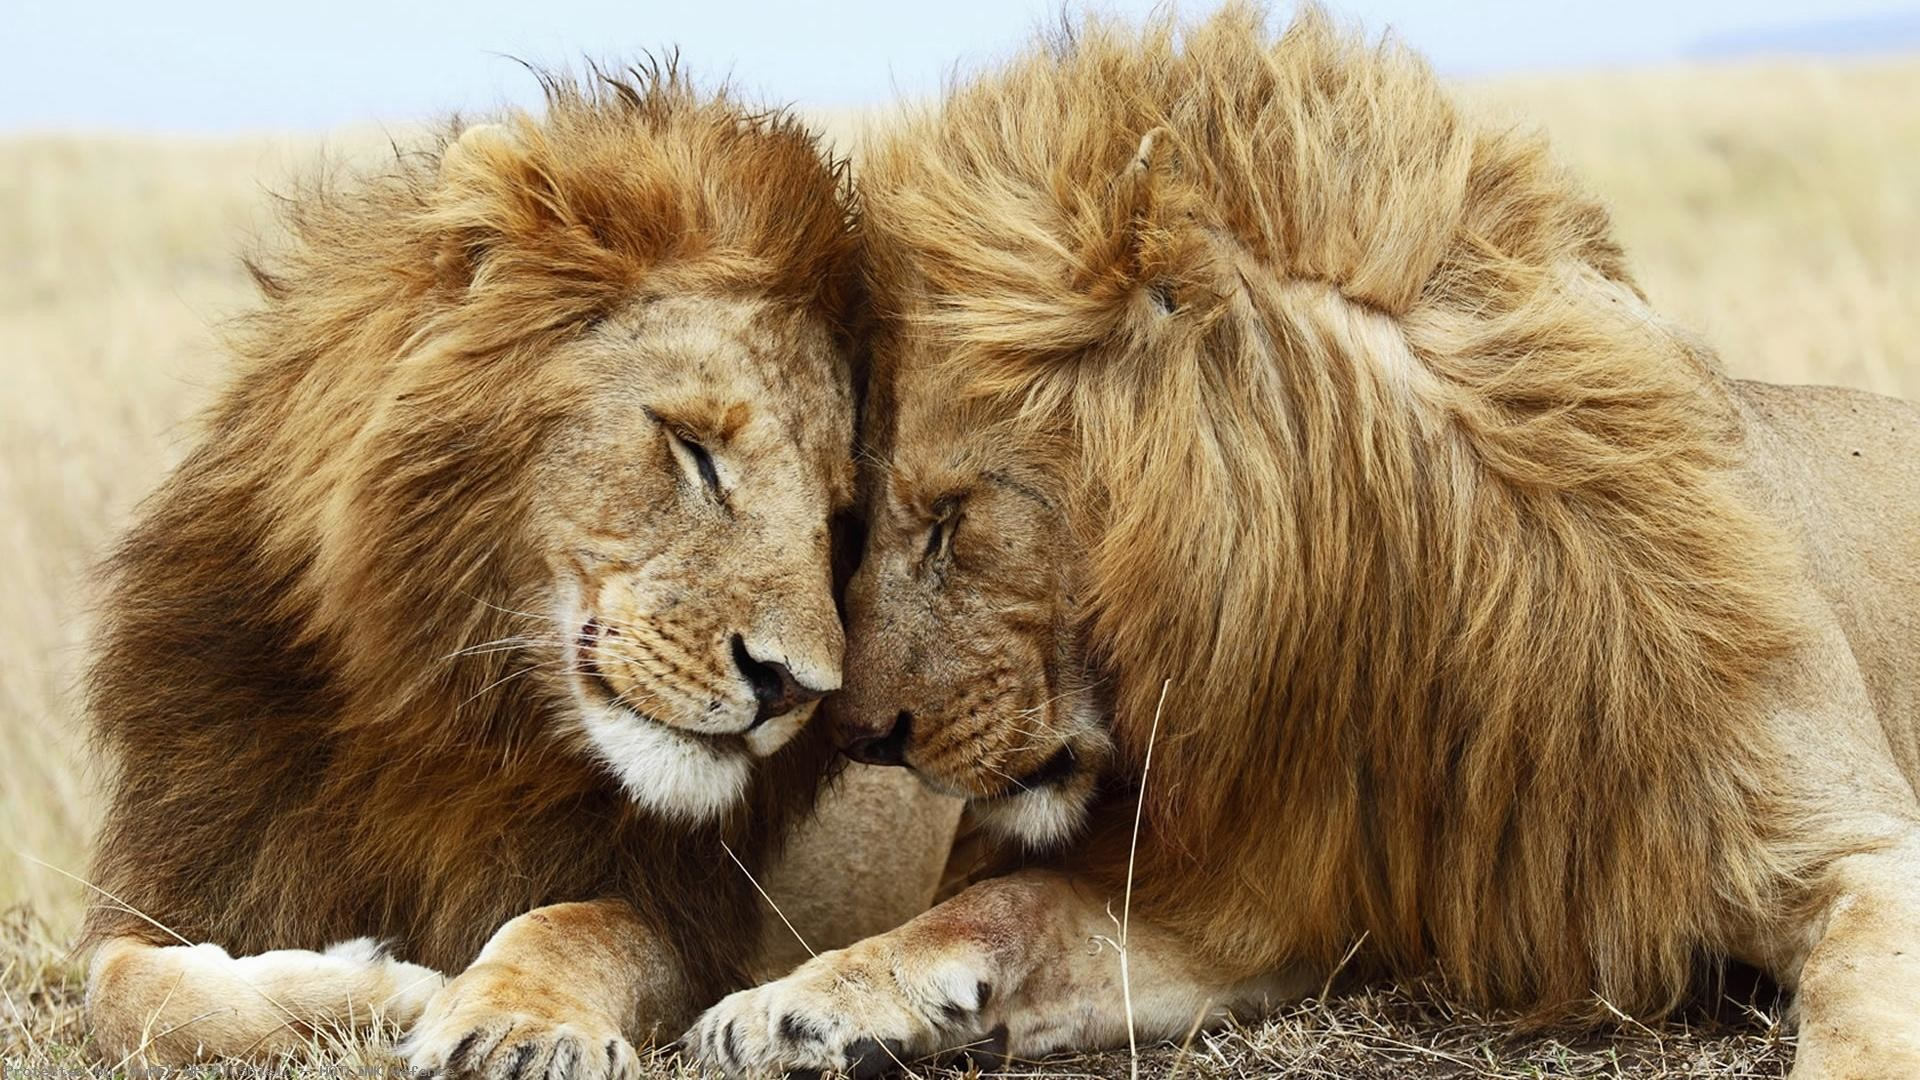 Beautiful-Lions-Pair-1920×1080-Need-iPhone-S-Plus-